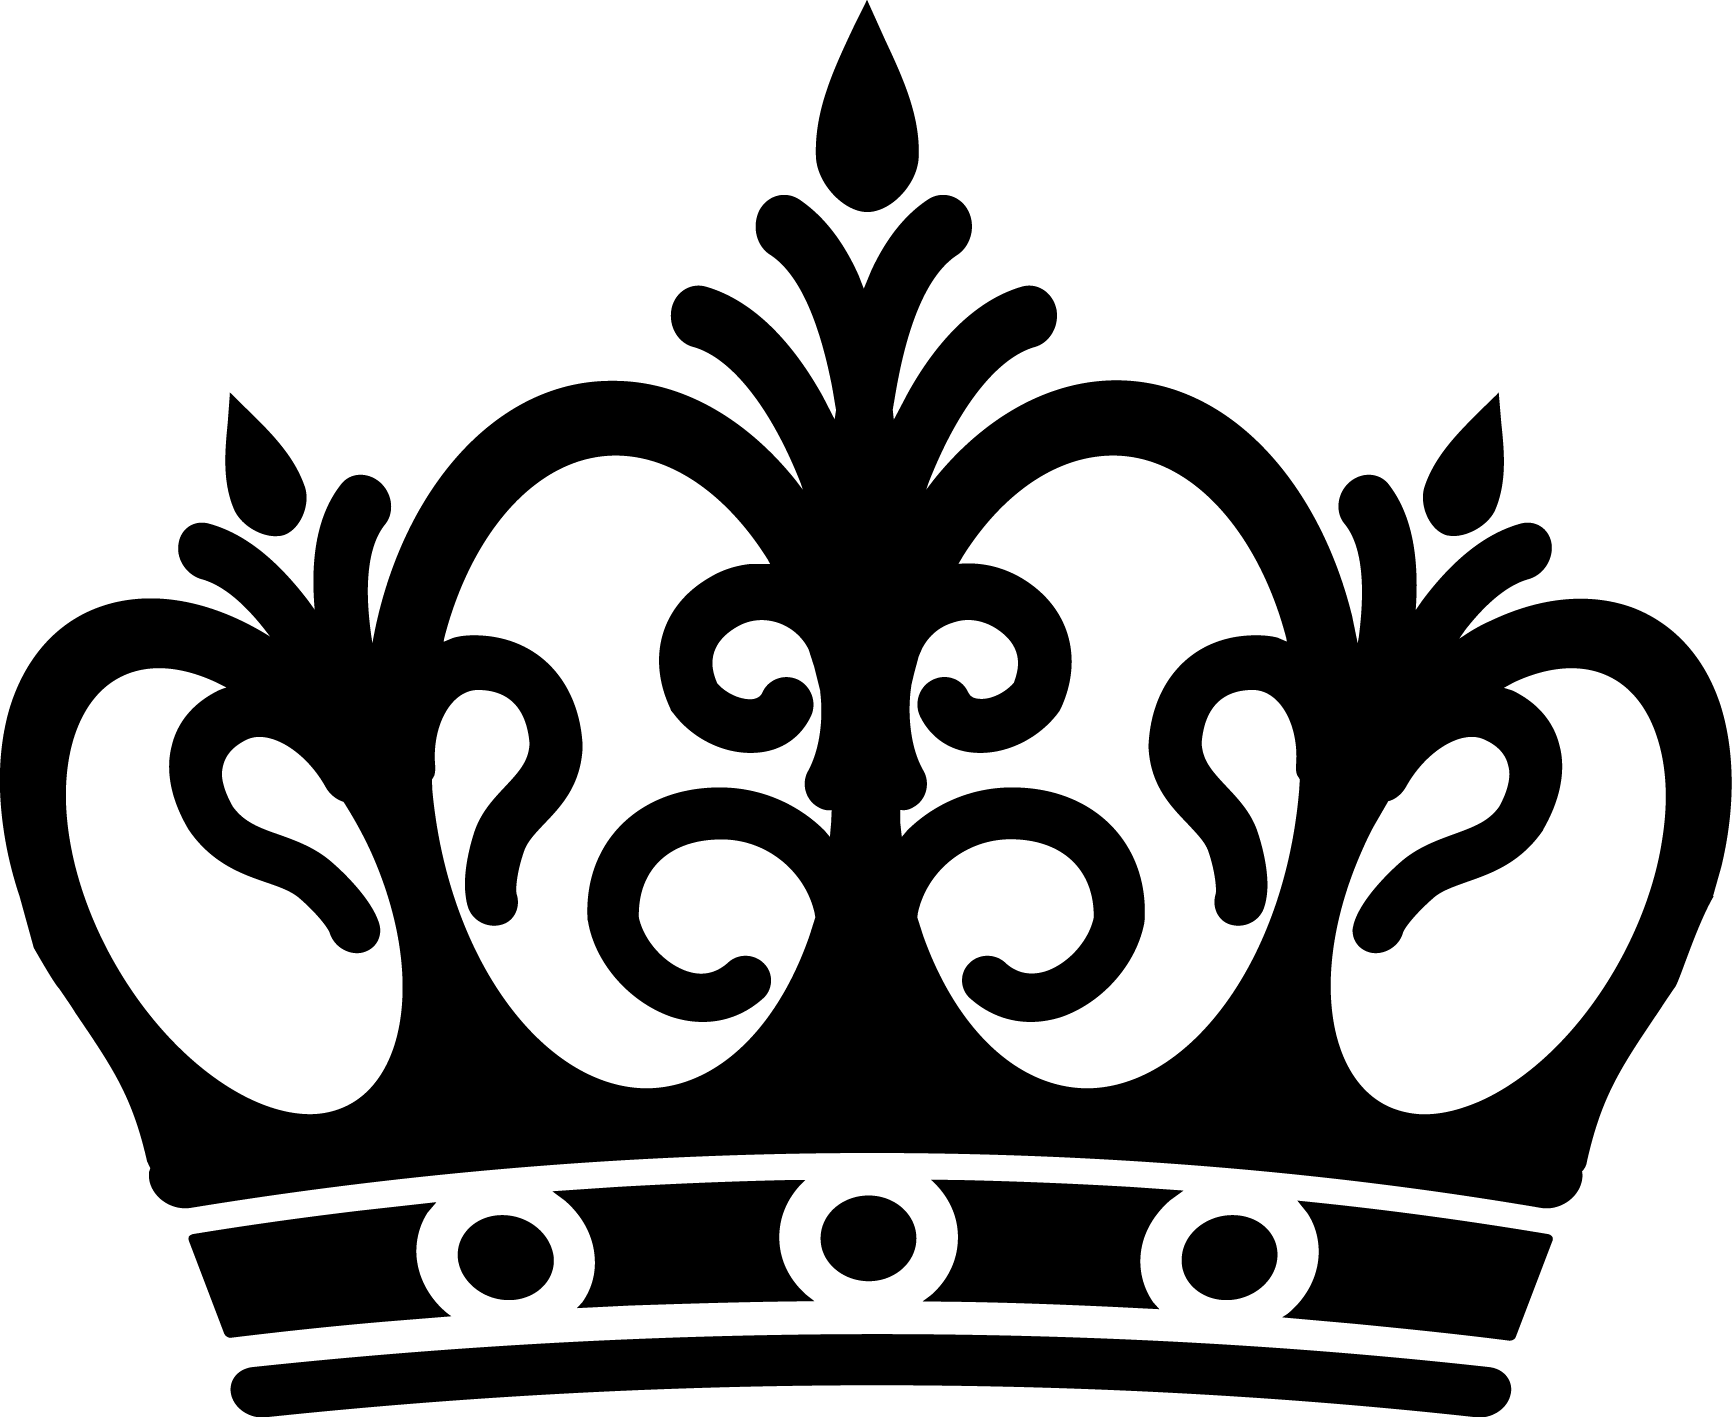 Crown Logo Wallpapers.